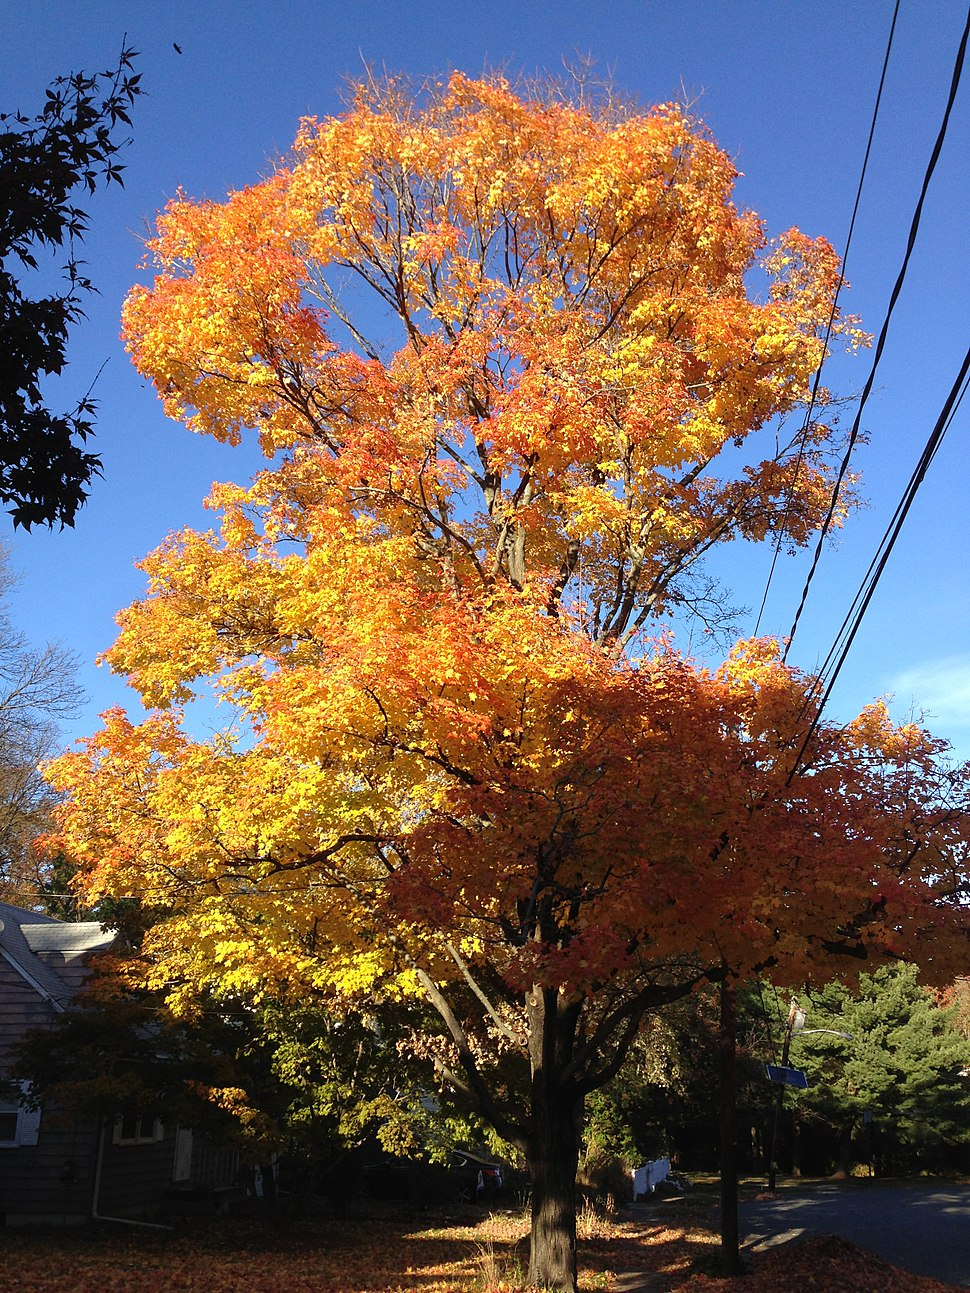 2014-11-02 15 25 30 Sugar Maple during autumn along Patton Drive in Ewing, New Jersey